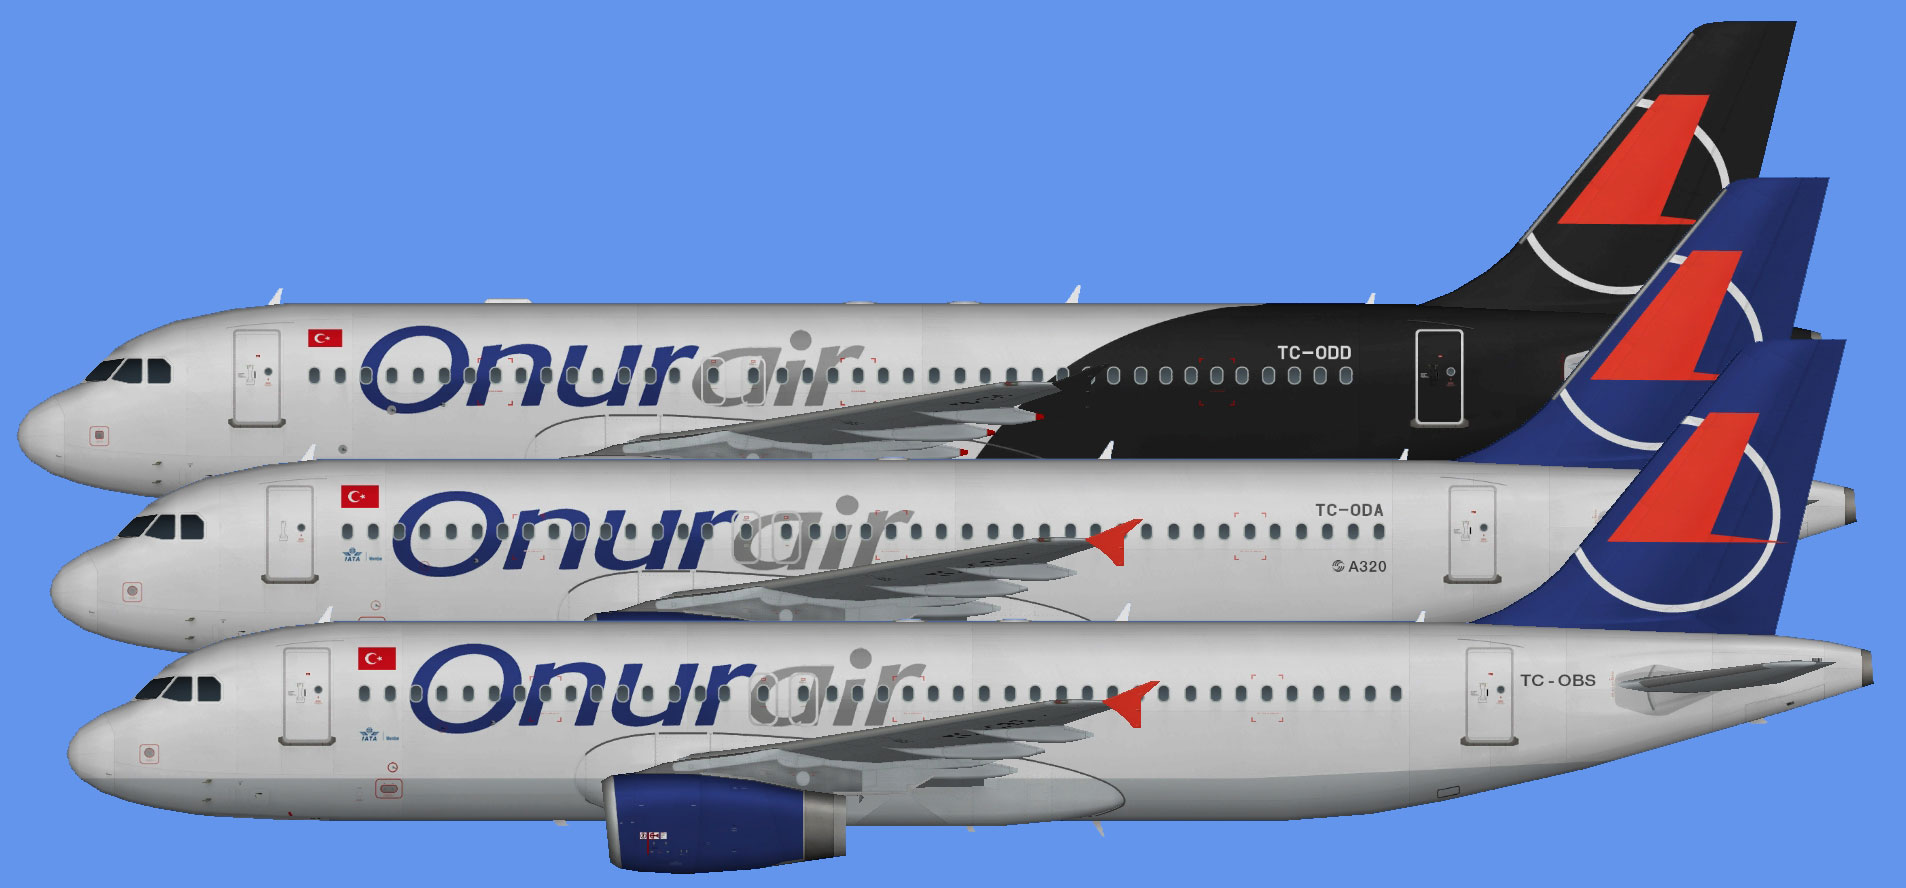 Onur Air Airbus A320